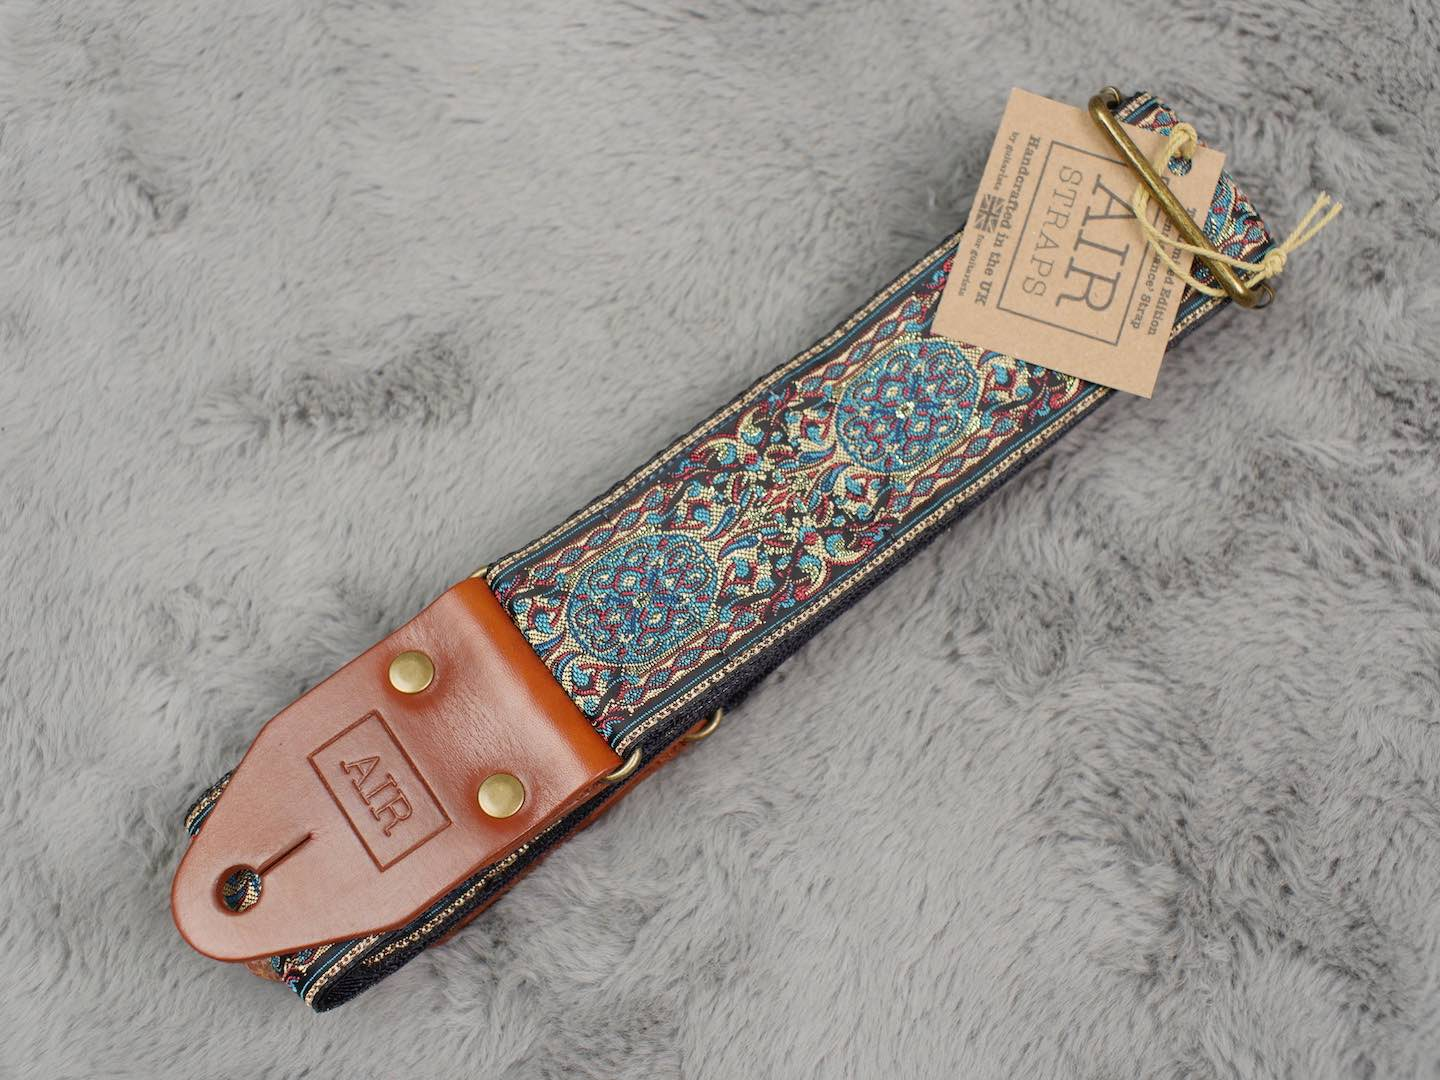 Air Straps Limited Edition 'Renaissance' Guitar Strap - Free Shipping!